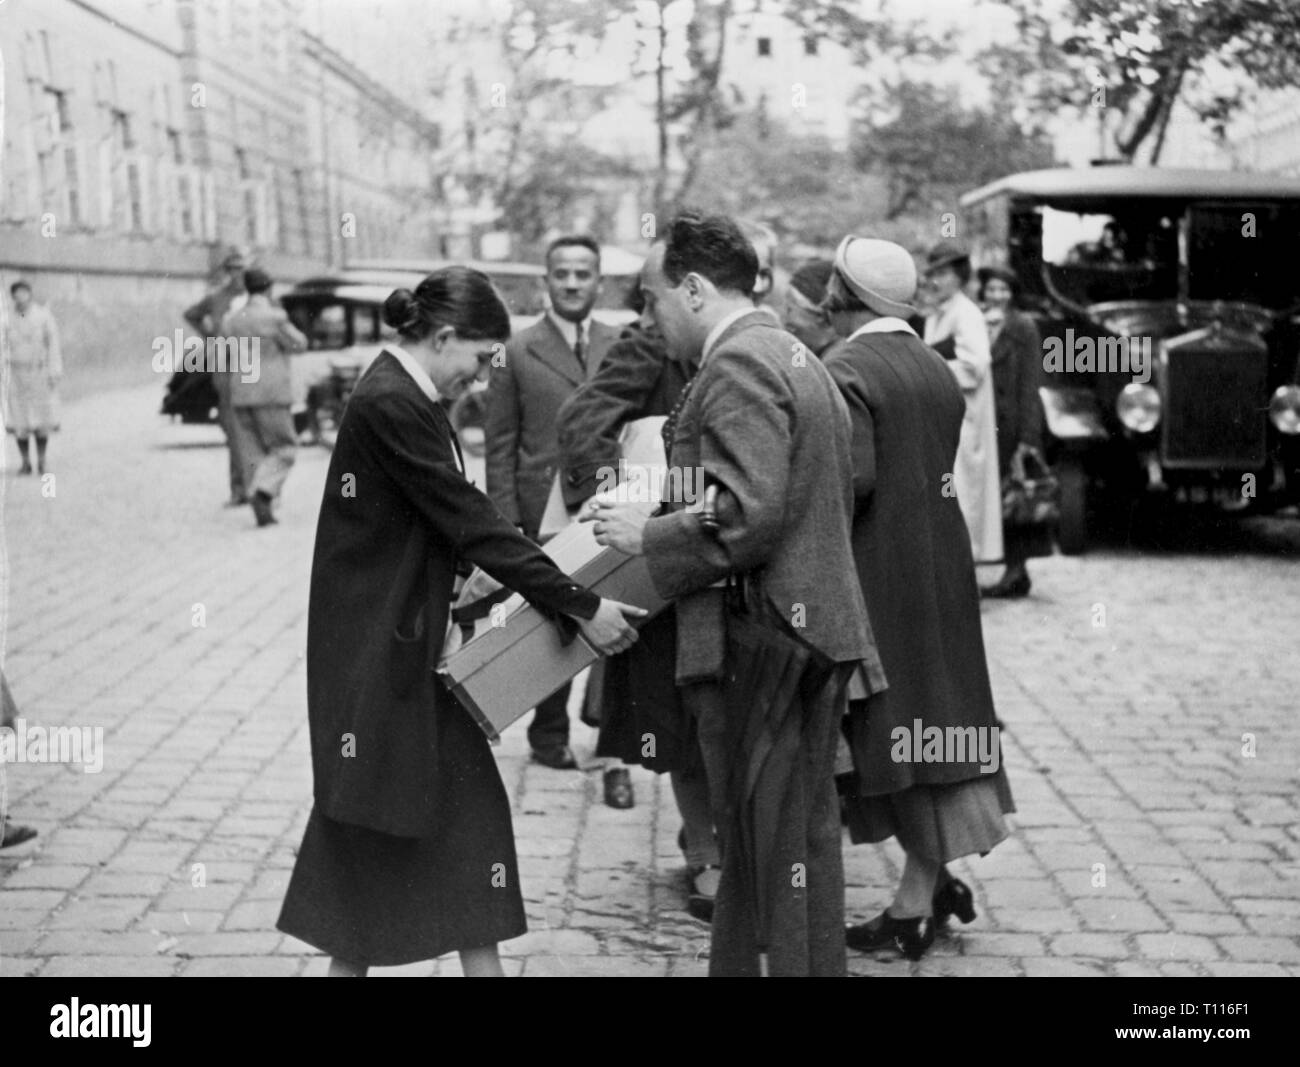 justice, penitentiary system, detention, dismissal of arrested National Socialists, by Federal President William Miklas remitted amnesty based on the German-Austrian agreement, prisoners are awaited by their relatives, Vienna, 23.7.1936, Additional-Rights-Clearance-Info-Not-Available - Stock Image